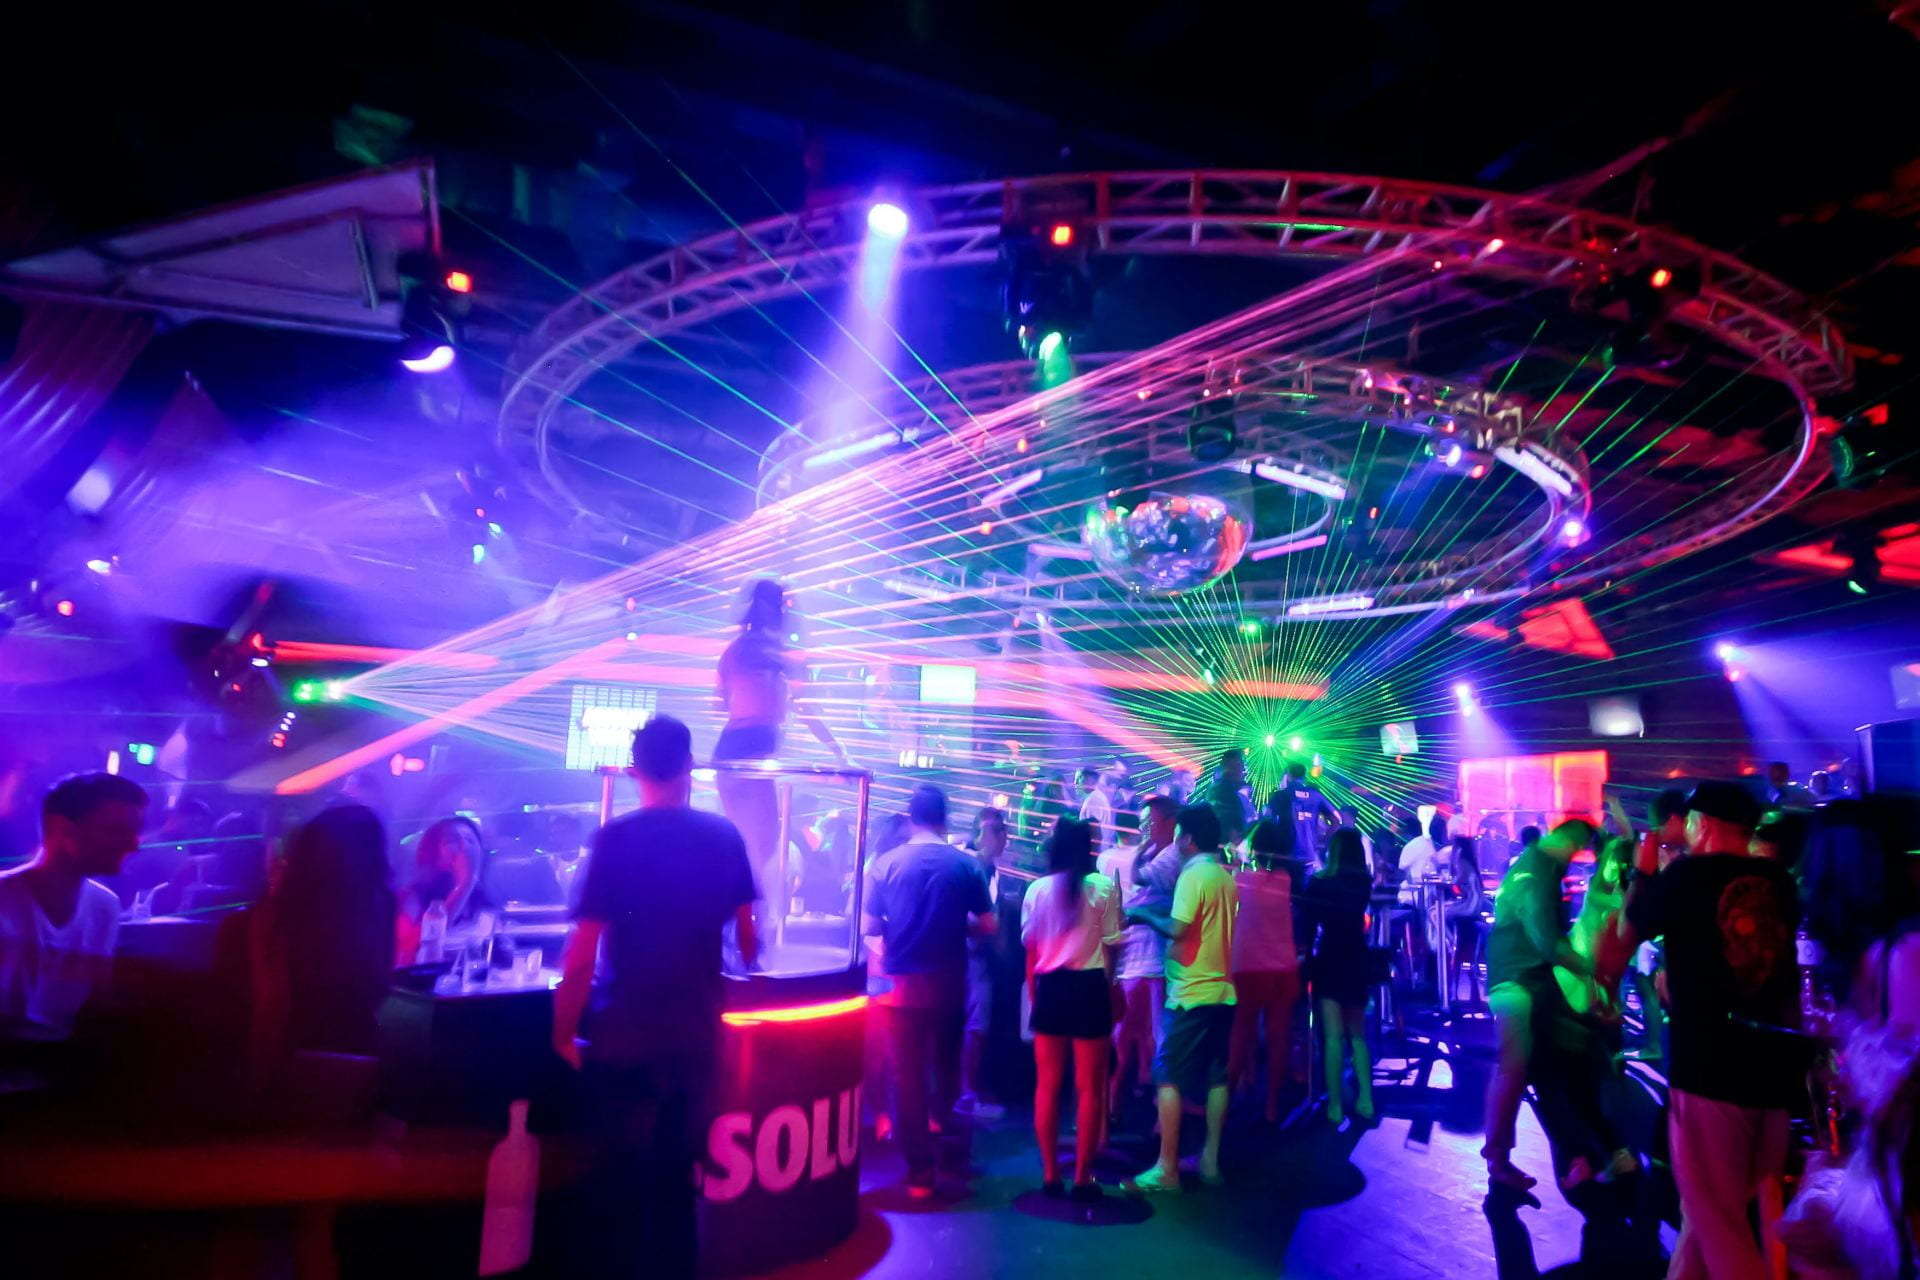 Crowded nightclub featuring strobe lights.